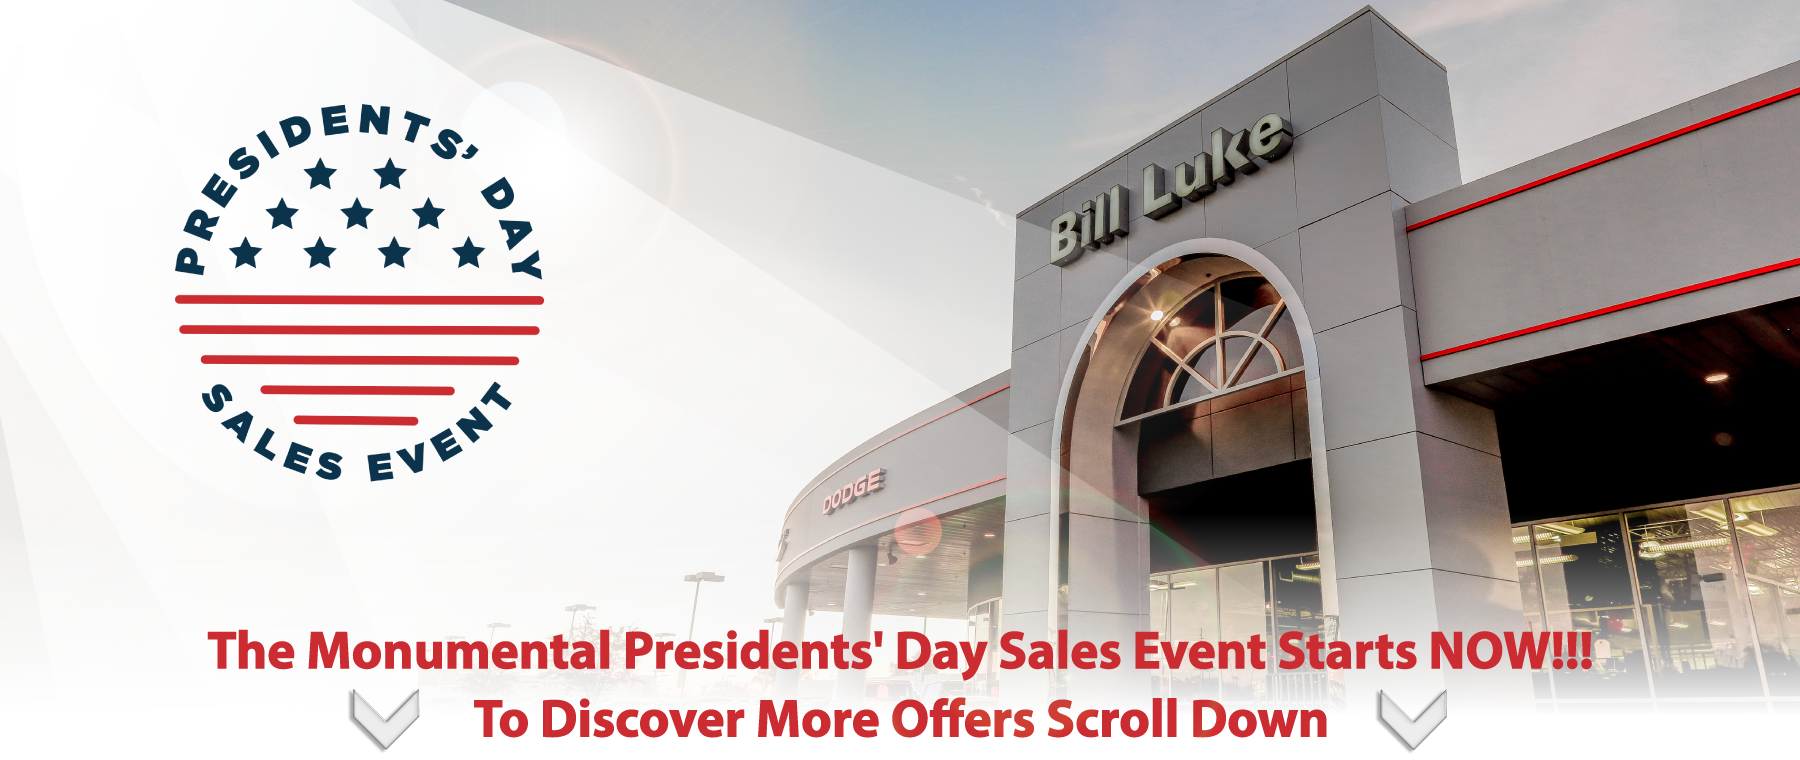 The Monumental Presidents' Day Sales Event Starts NOW At Bill Luke